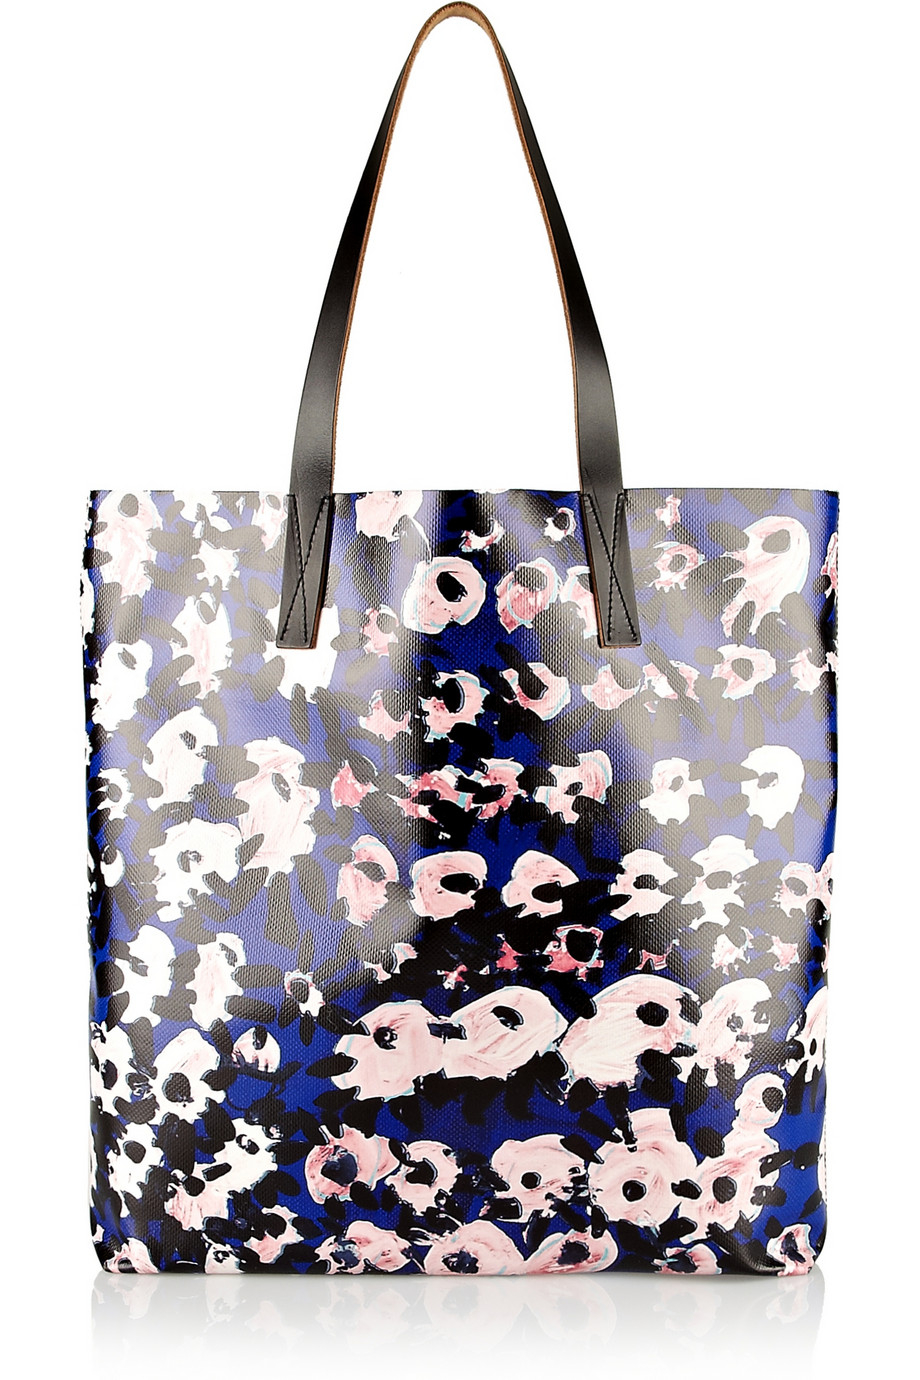 Marni Printed Coated-Canvas Tote in Blue